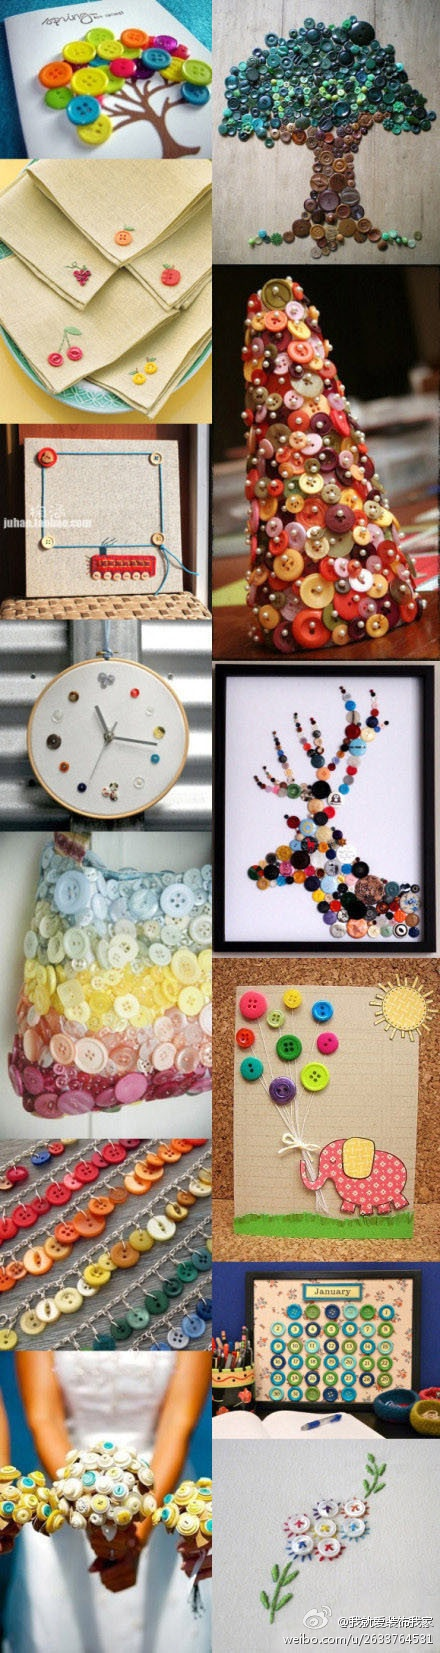 Manualidades con botonesProjects, Crafts Ideas, Buttons Crafts, Creative, Buttons Buttons, Crafty, Buttons Art, Buttons, Diy